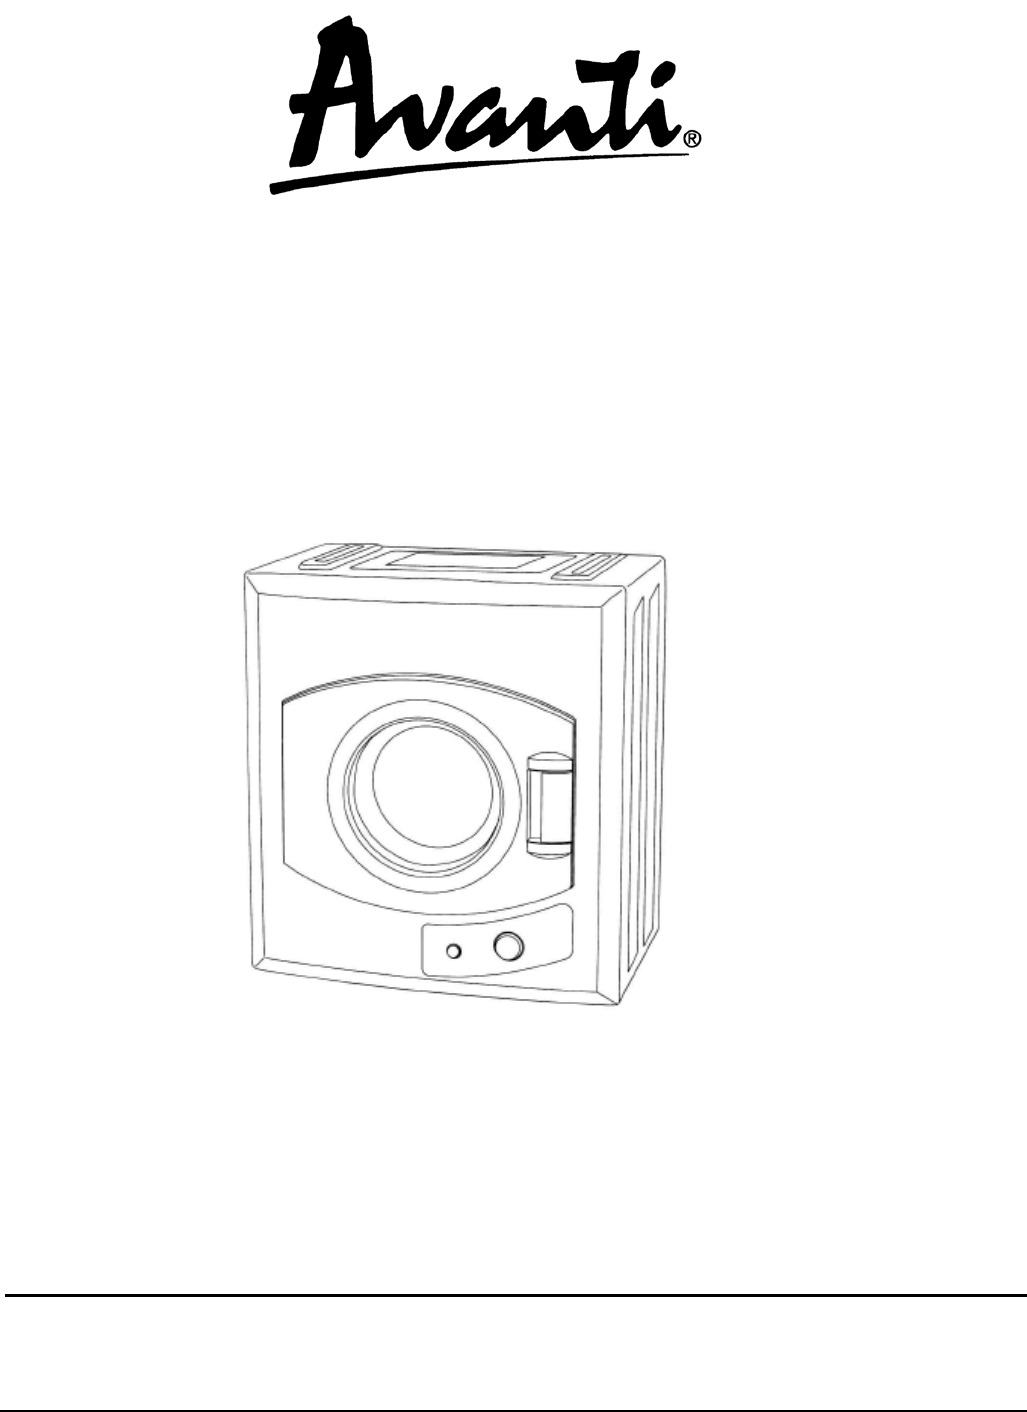 Avanti Dishwasher Wiring Diagram Services Clothes Dryer D110 1 User Guide Manualsonline Com Rh Laundry For Ge Profile Frigidaire